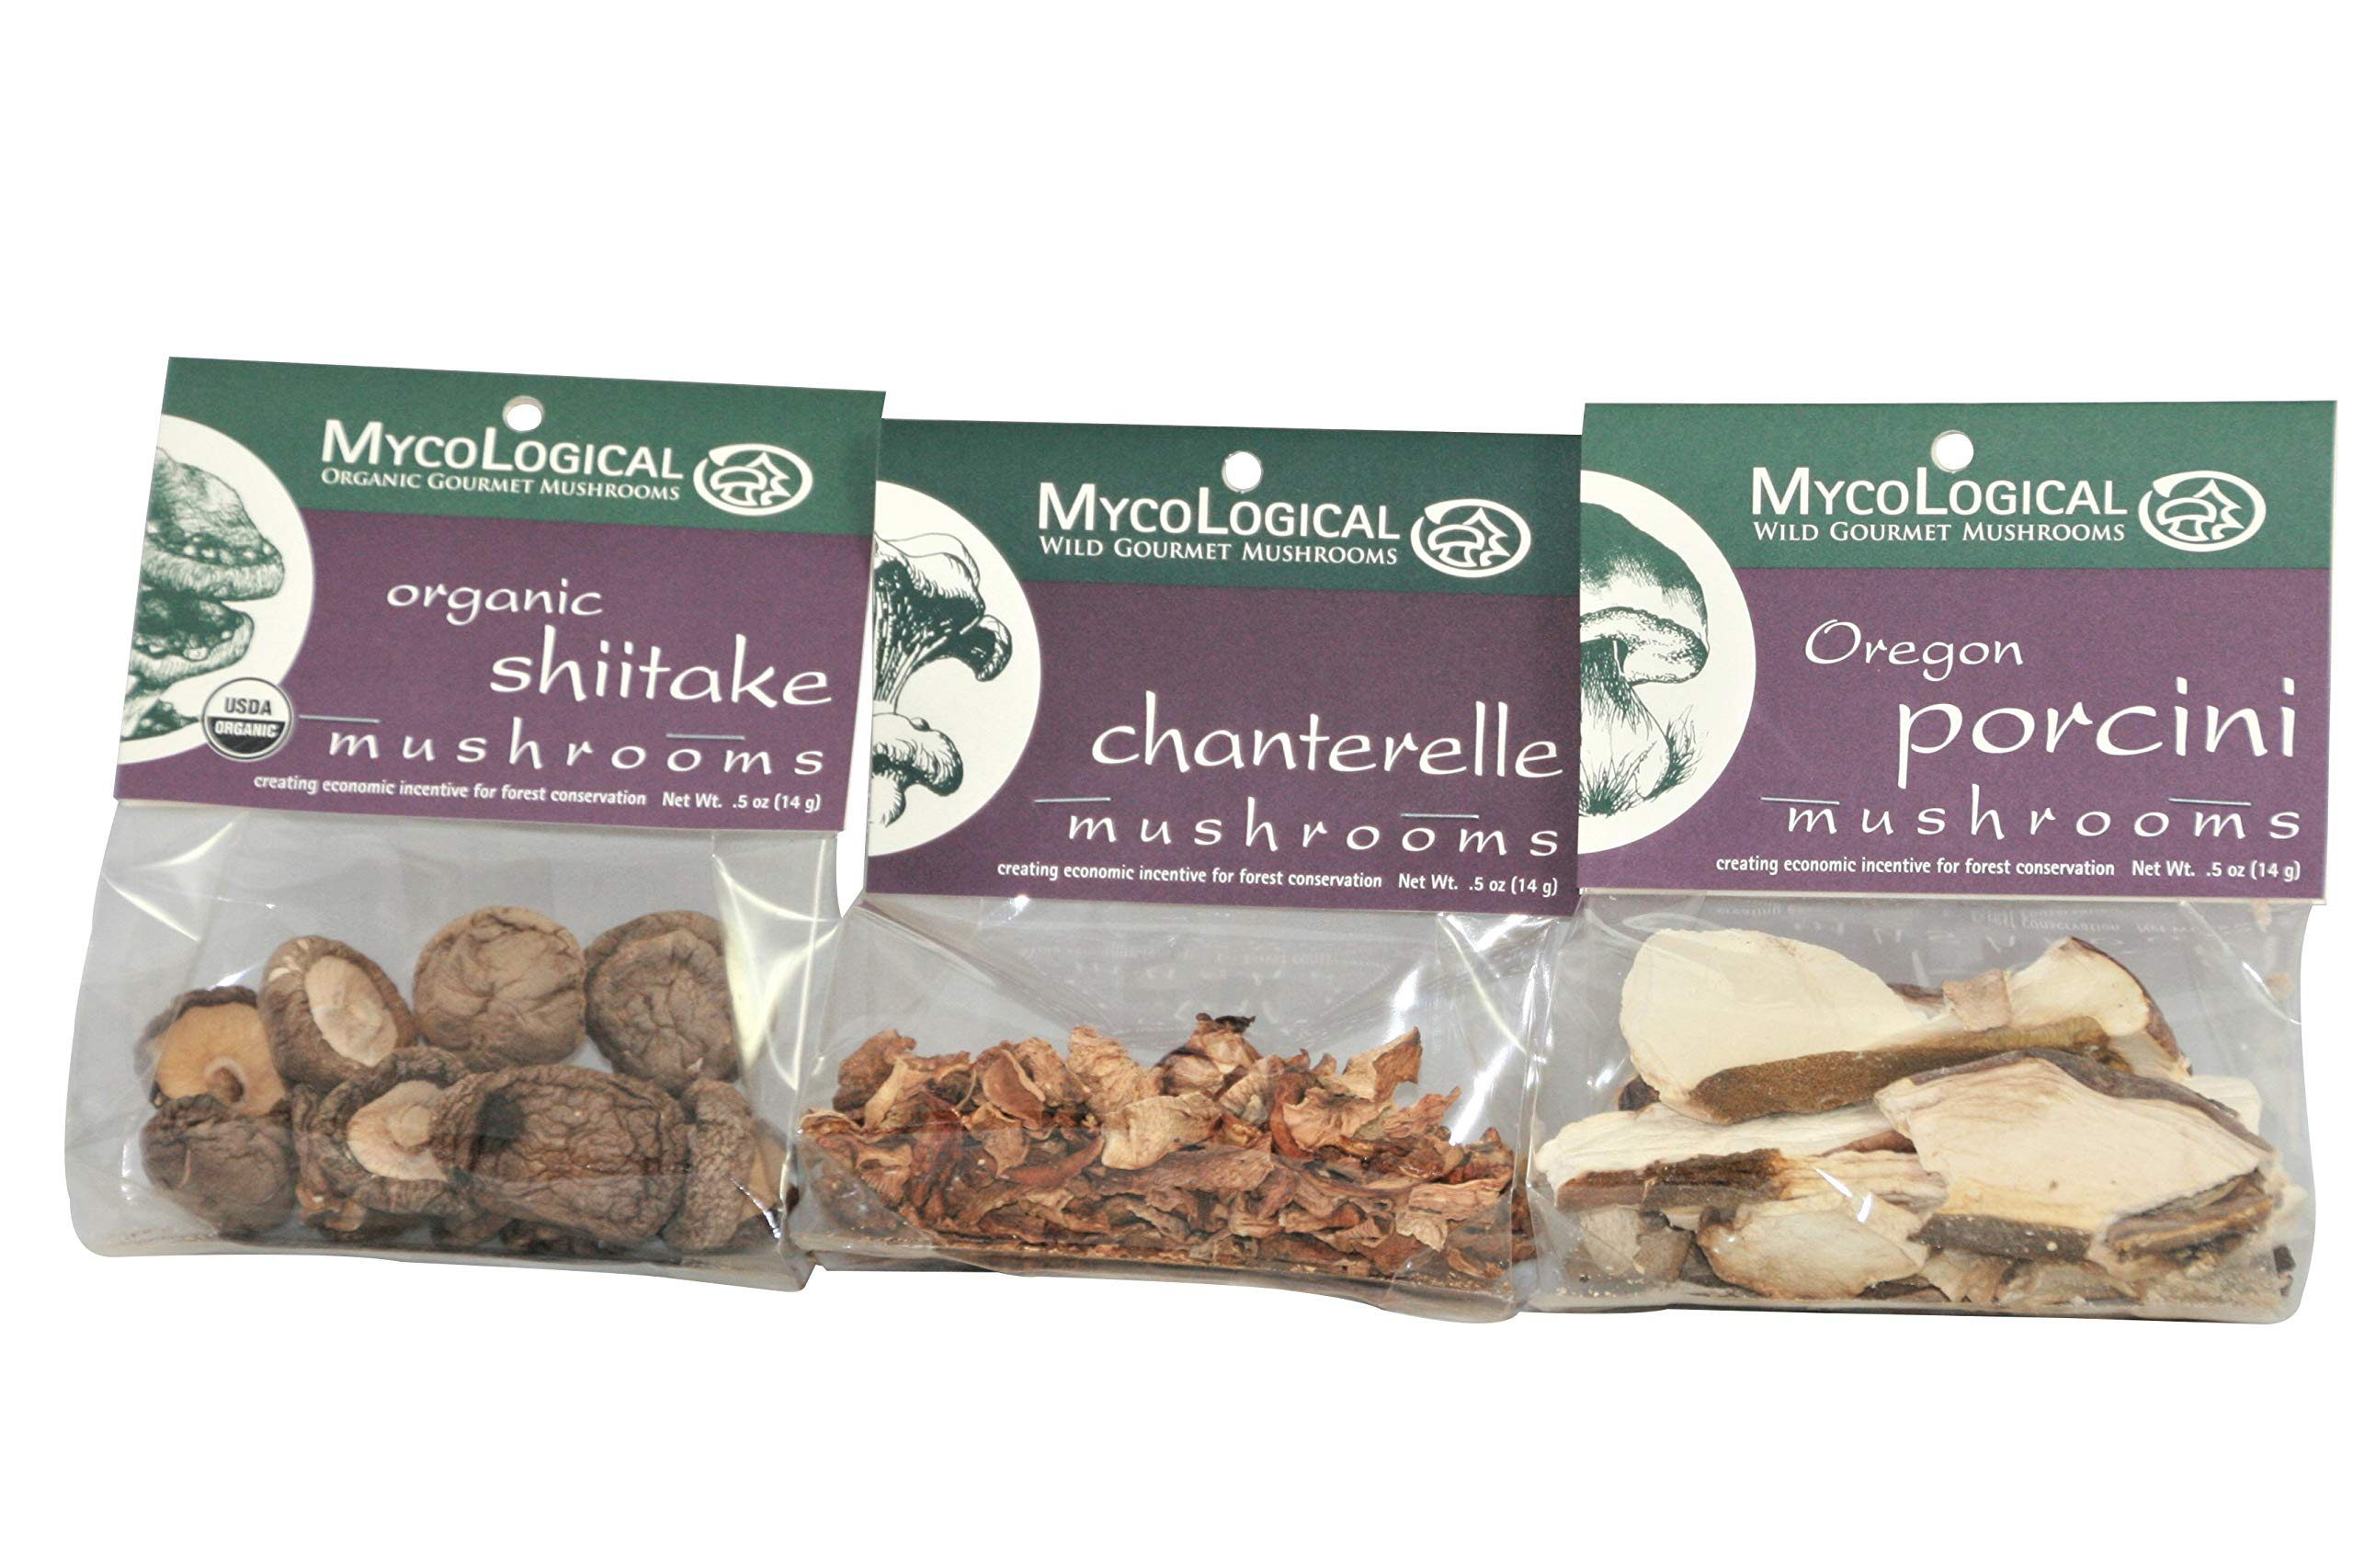 Mycological 0.5 oz Gourmet Dried Mushrooms - One Each Chanterelle, Shiitake, and Porcini